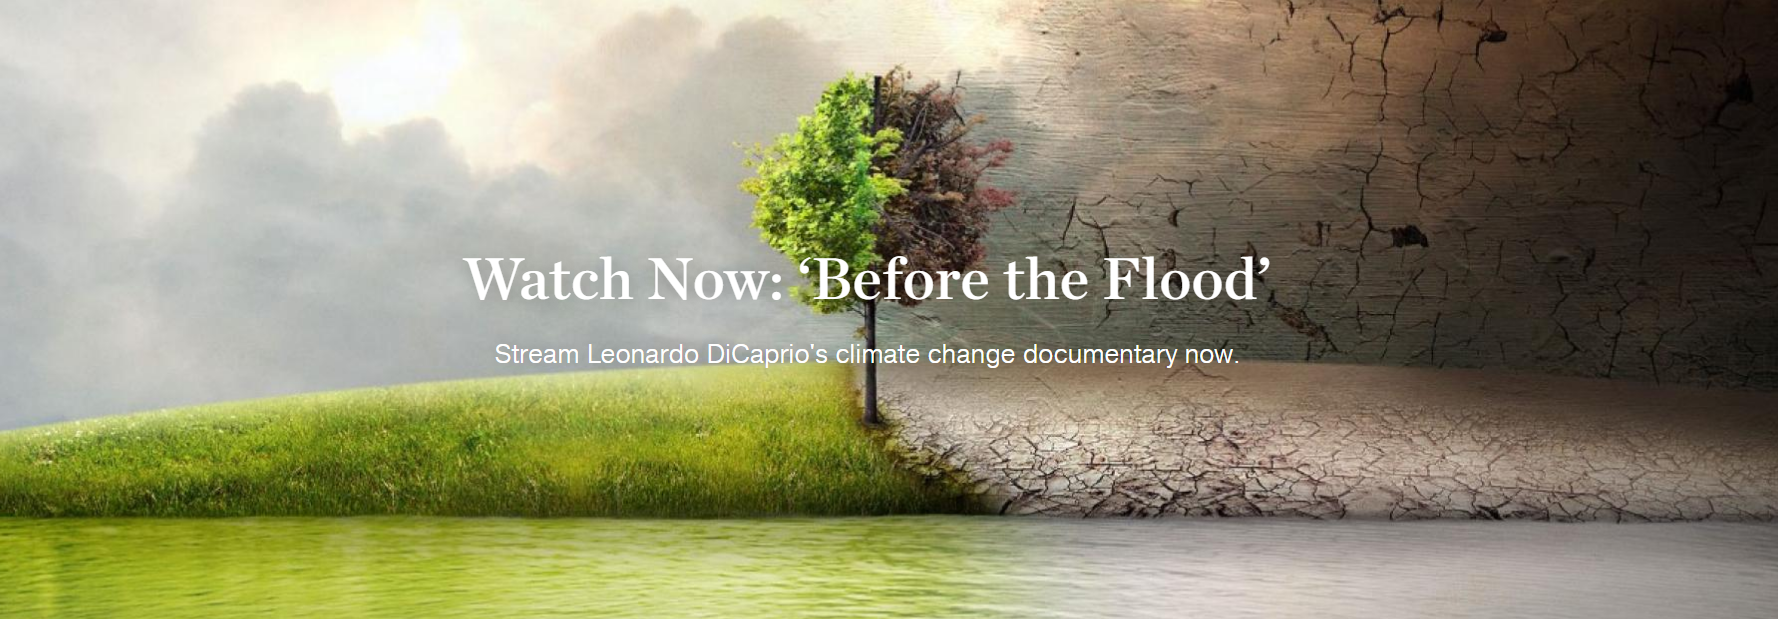 "novo filme de Leonardo DiCaprio ""Before the Flood"